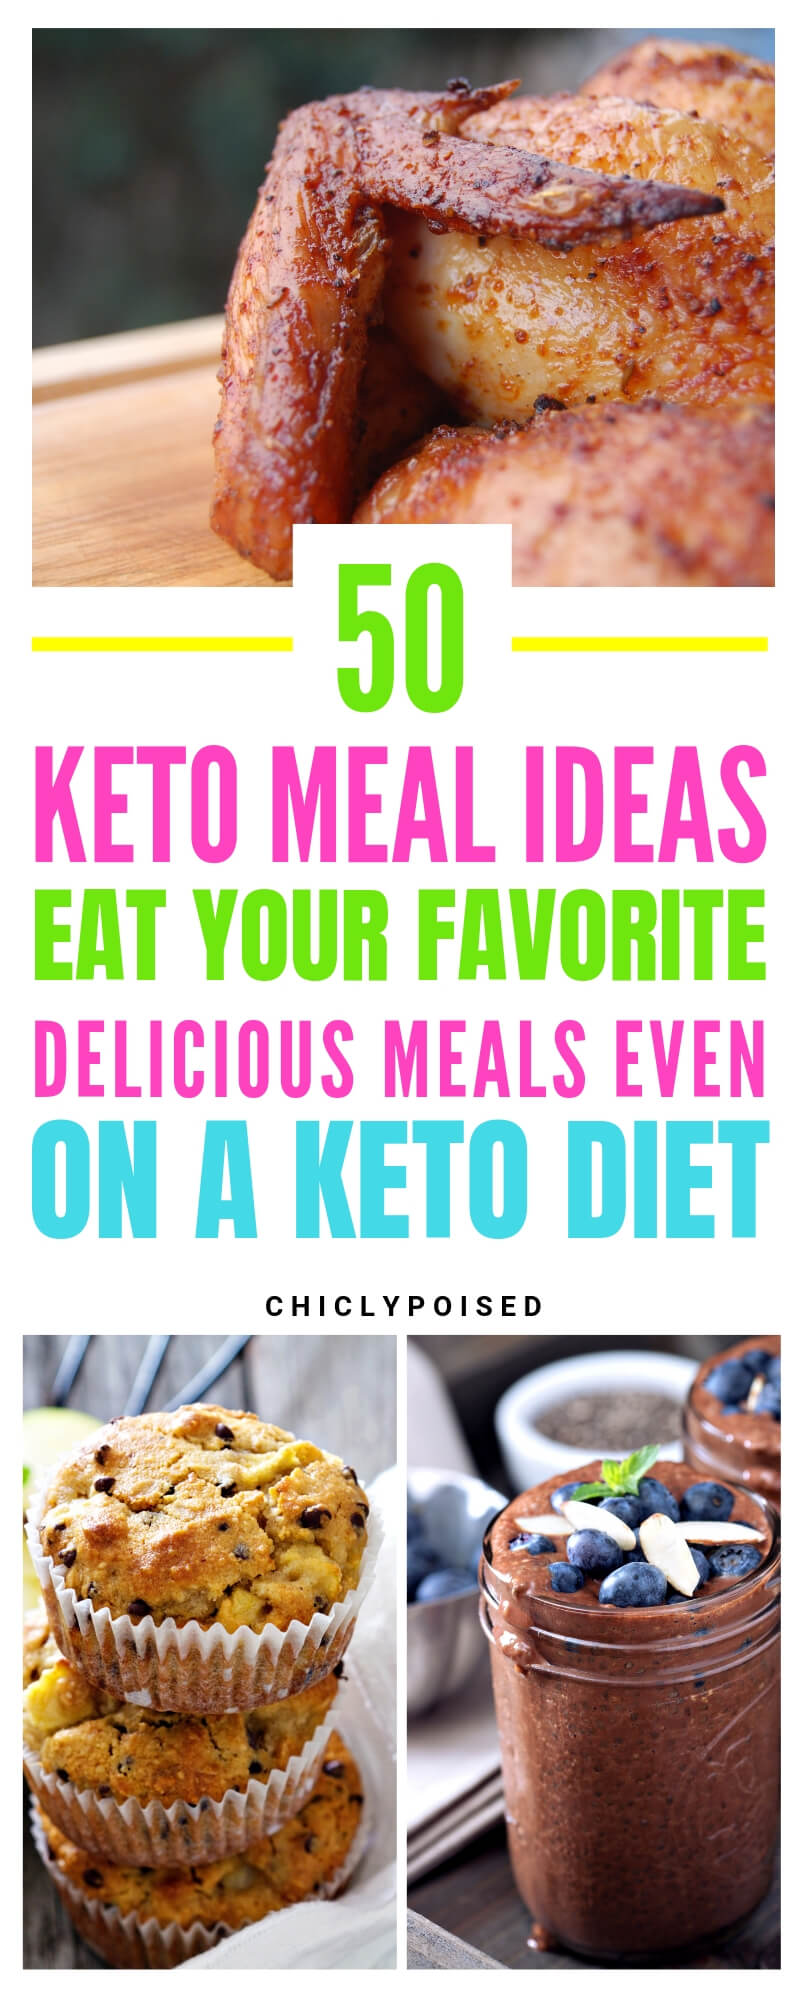 Keto Strategy Stating With 50 Keto Meals Ideas Plus Keto Recipe-4